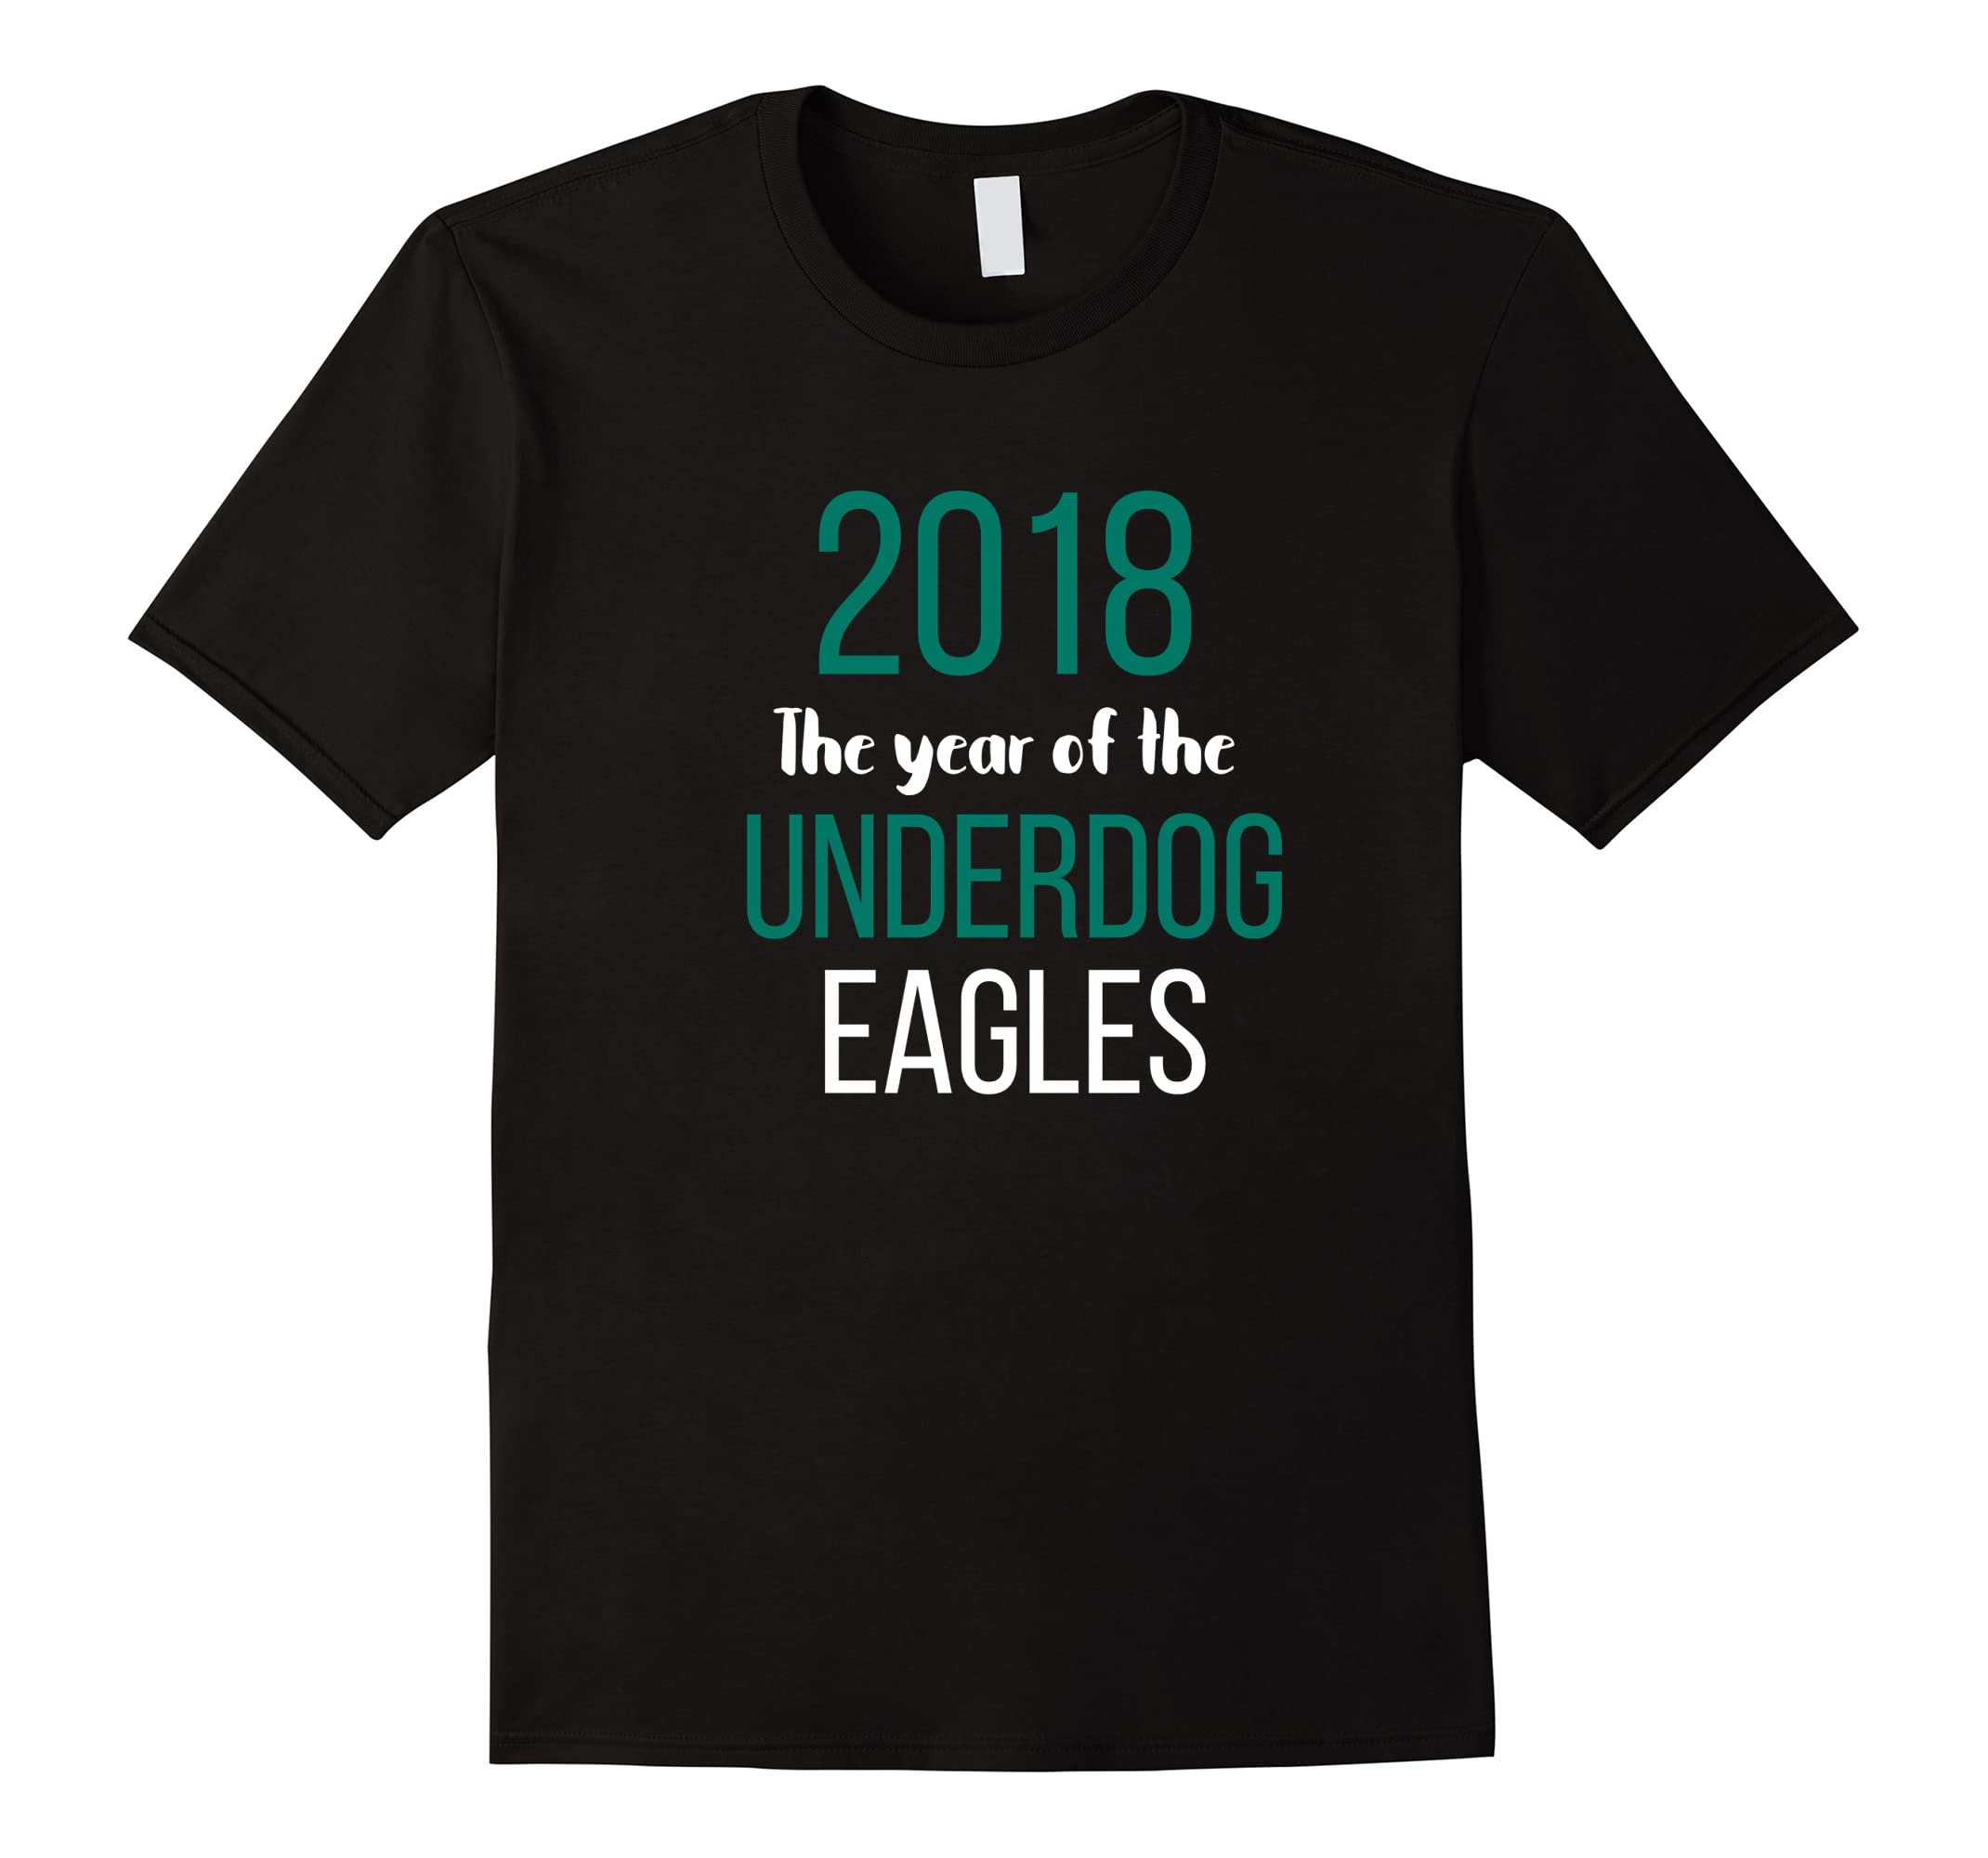 2018 The year of the Underdog Eagles Tee Shirt-ah my shirt one gift